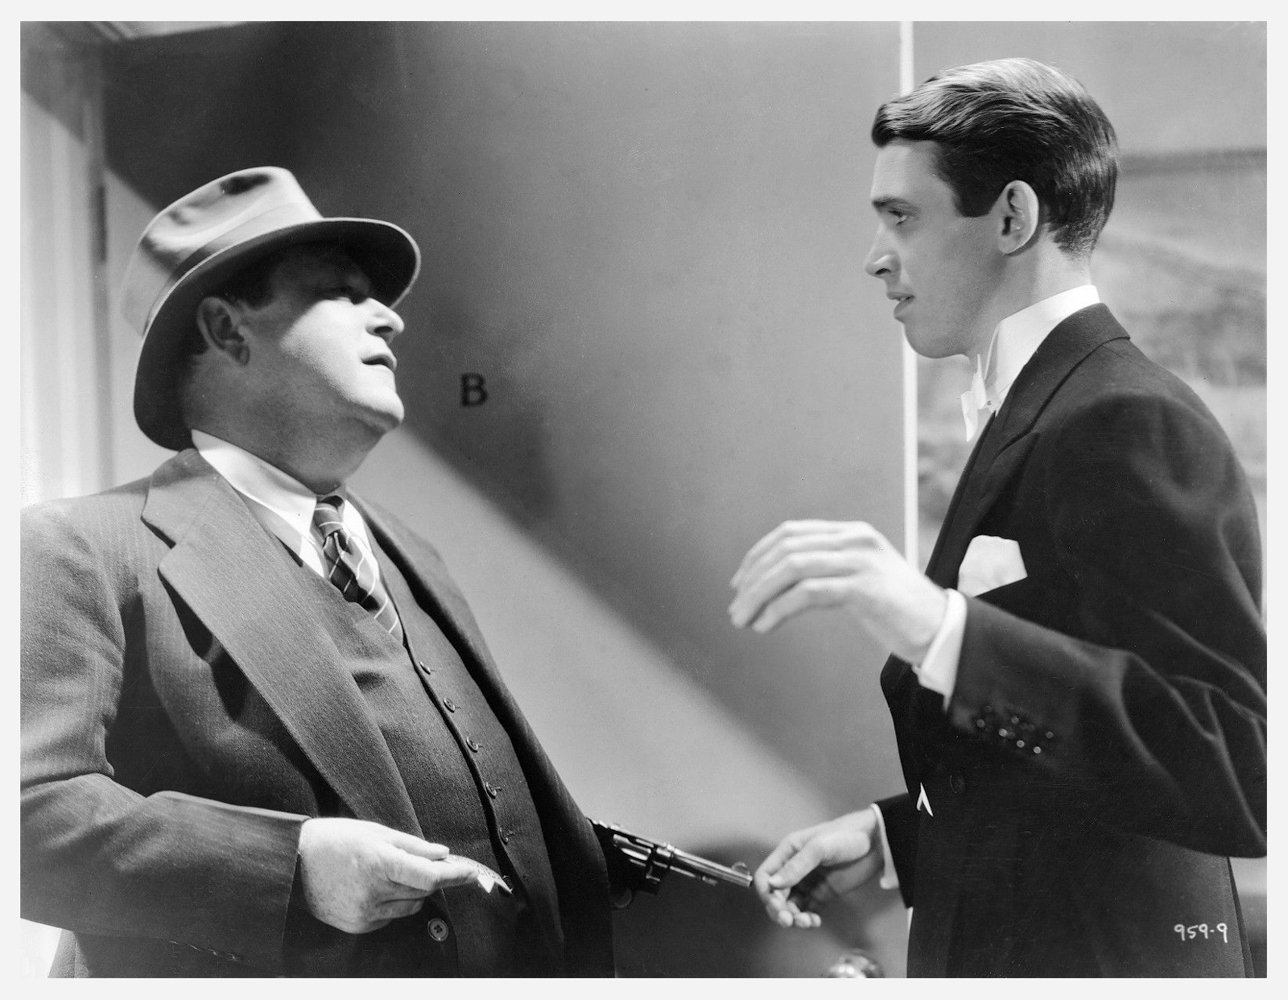 after the thin man 1936 scene still photo 959-9